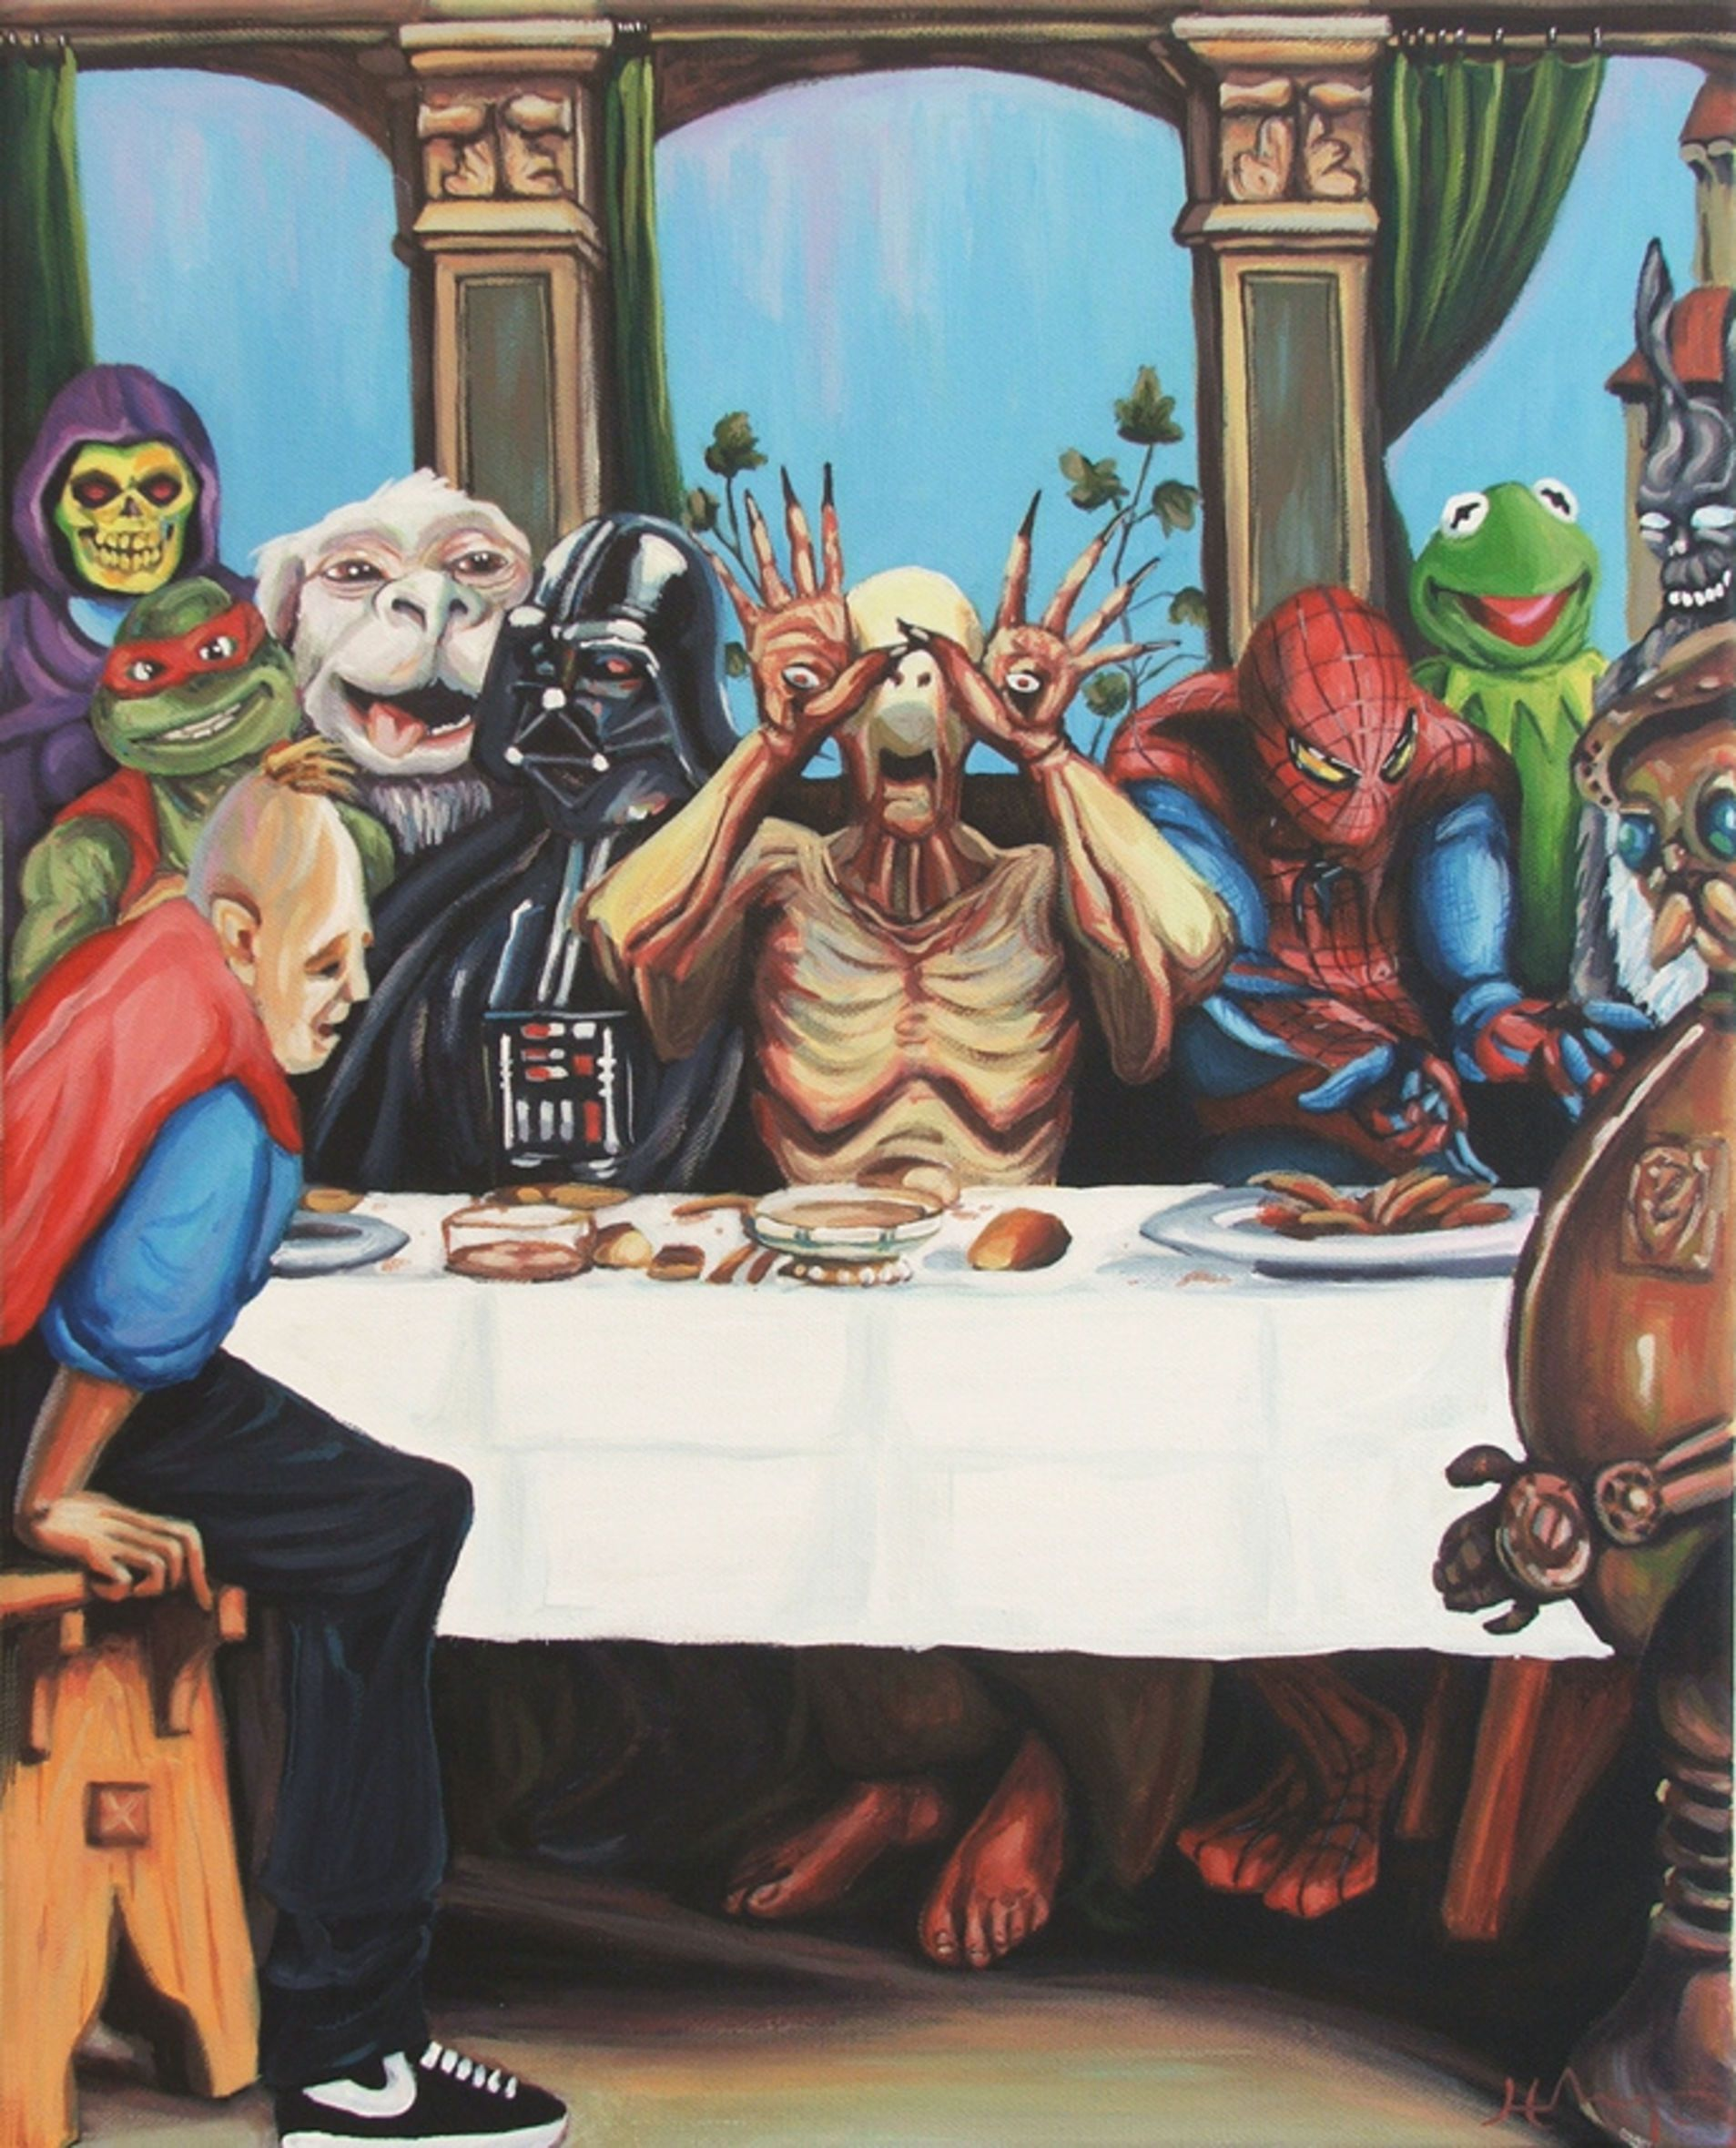 Batman and Darth Vader invade art history, in these absolutely deranged paintings #history